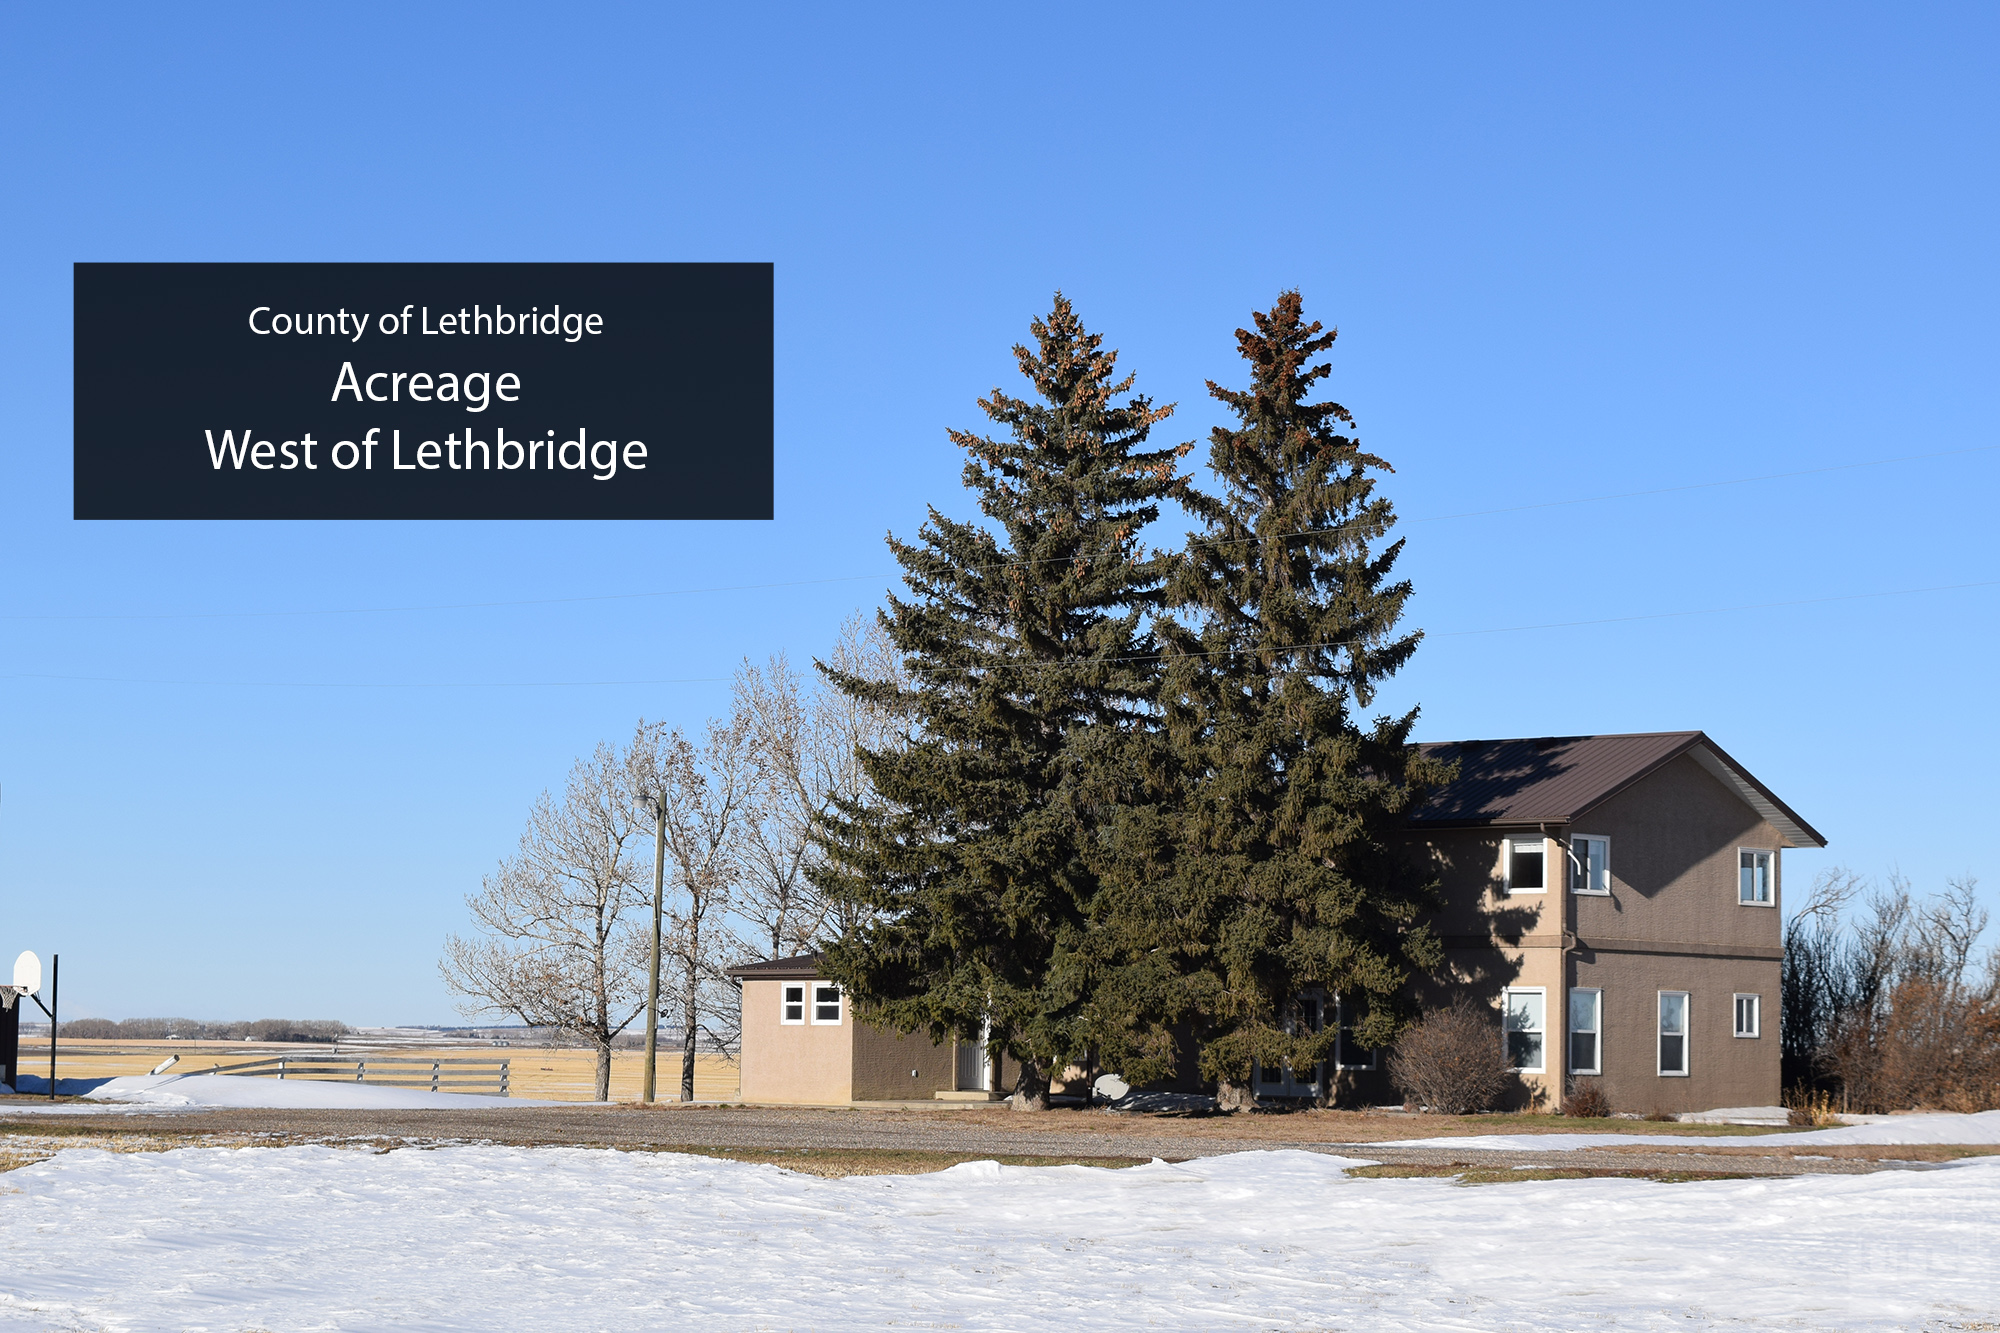 SE 32-9-22 W4  (House and Shop only) County of Lethbridge Key Image